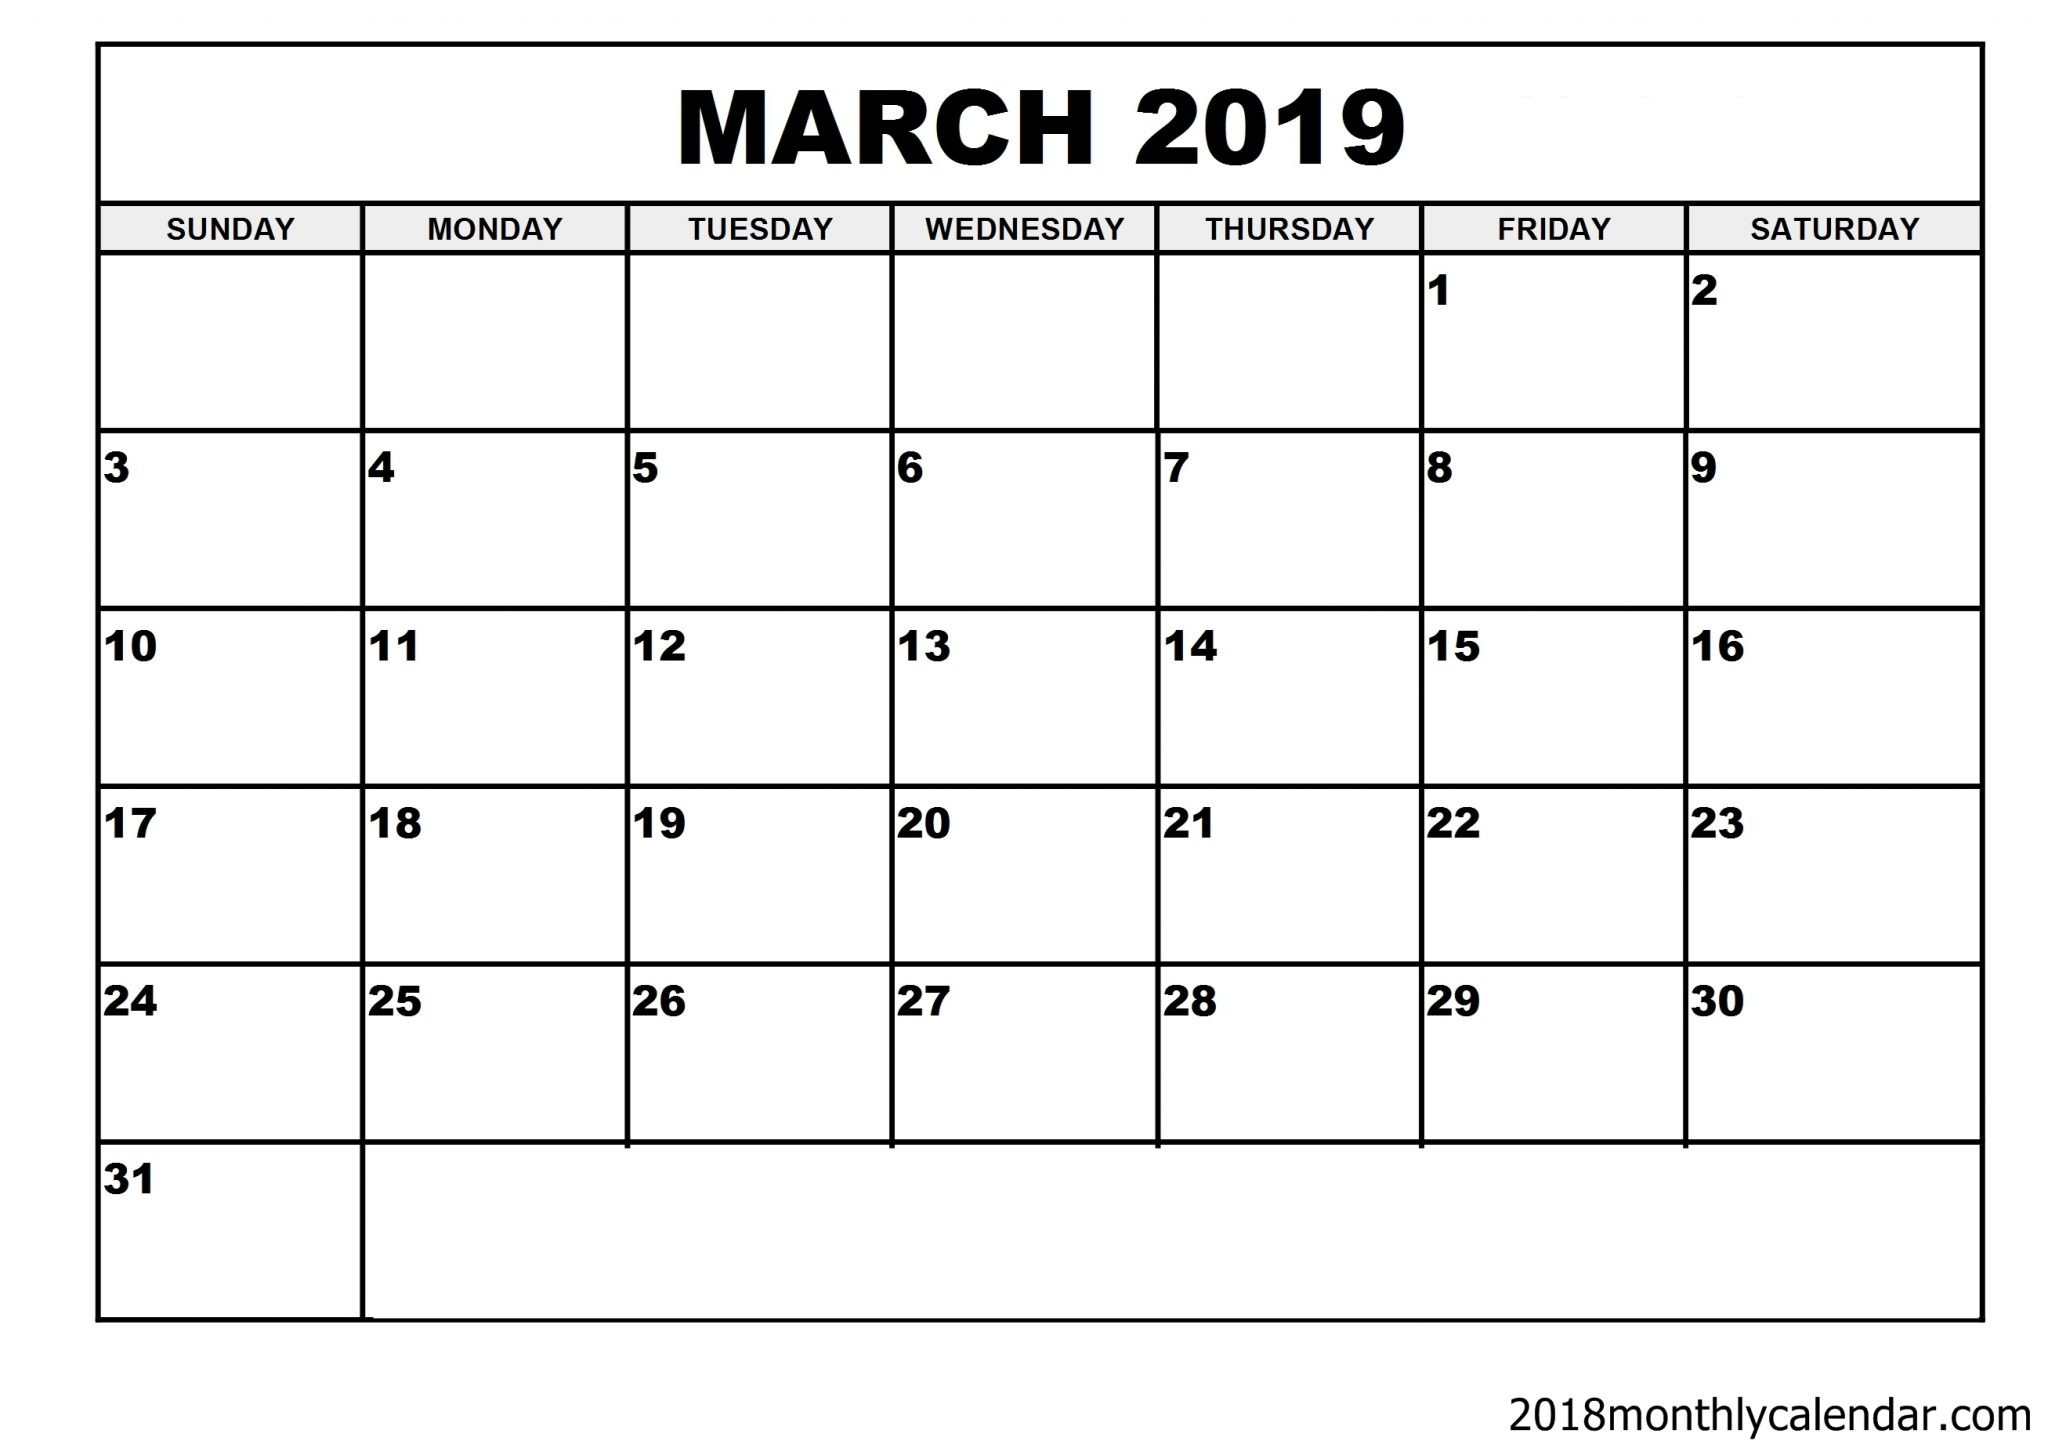 March 2019 Calendar India Más Arriba-a-fecha Fillable March 2019 Calendar Pdf Word Excel Of March 2019 Calendar India Actual Tag India